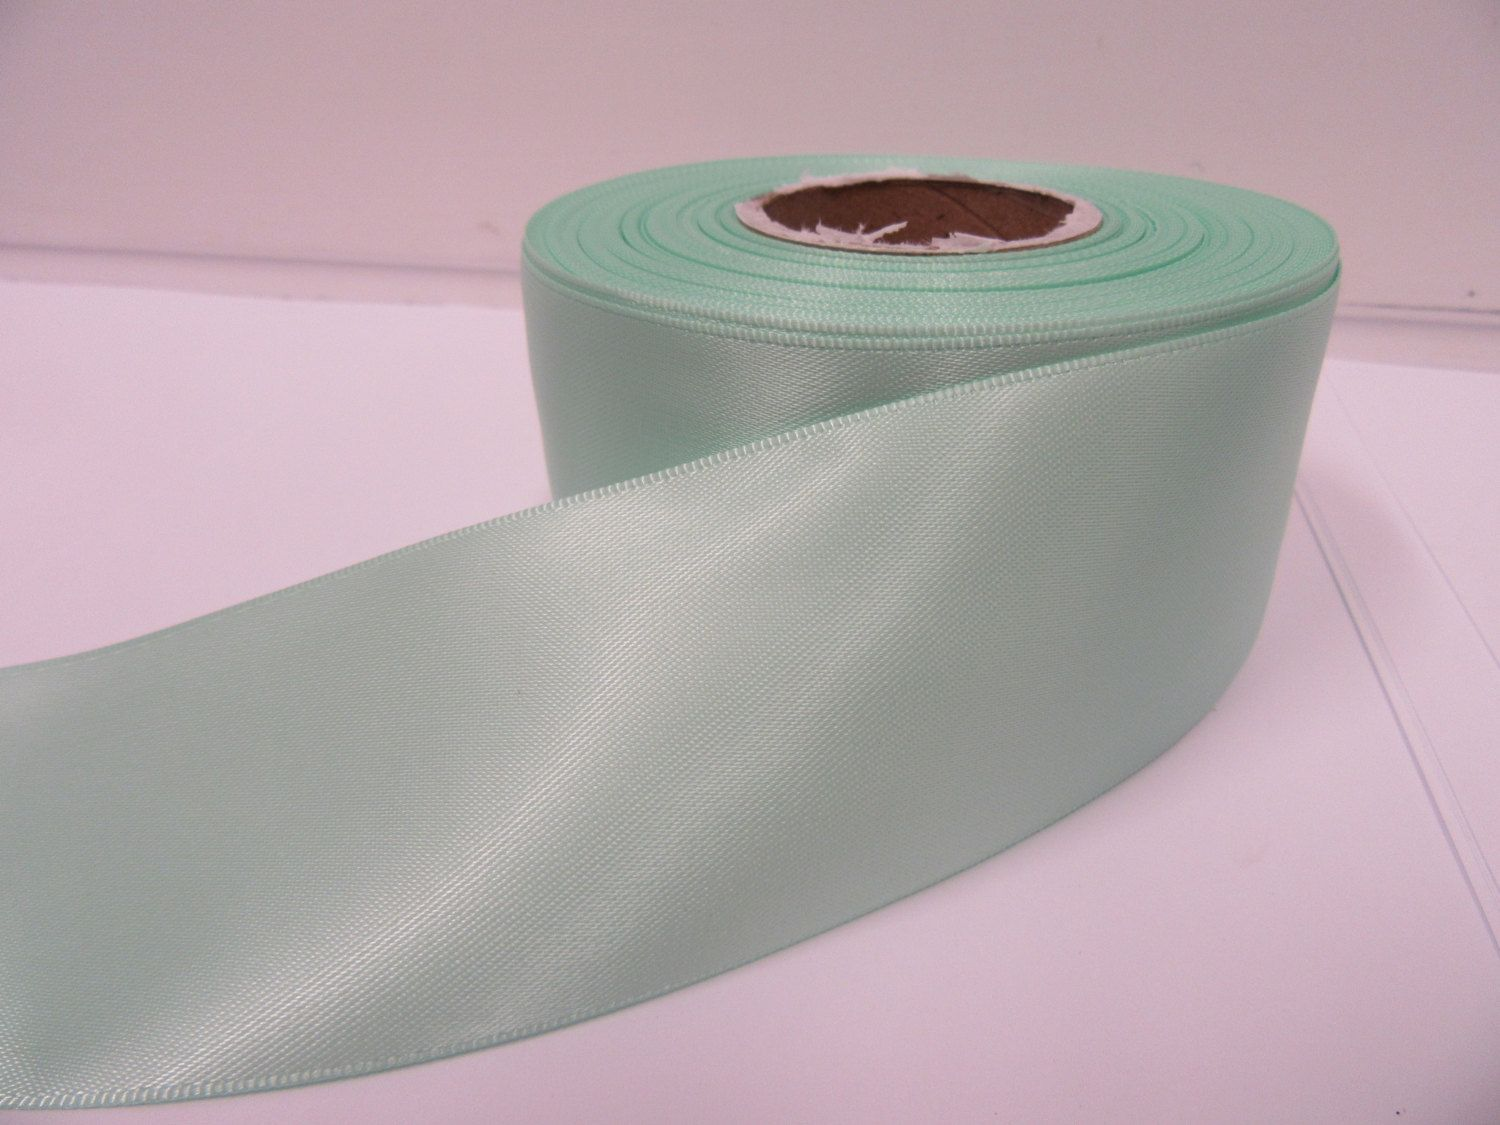 3mm 7mm 10mm 15mm 25mm 38mm 50mm Rolls Dark Mint Green Satin Ribbon 2 10 Or 25 Metres Double Sided By Beautifulribbon1 On Etsy